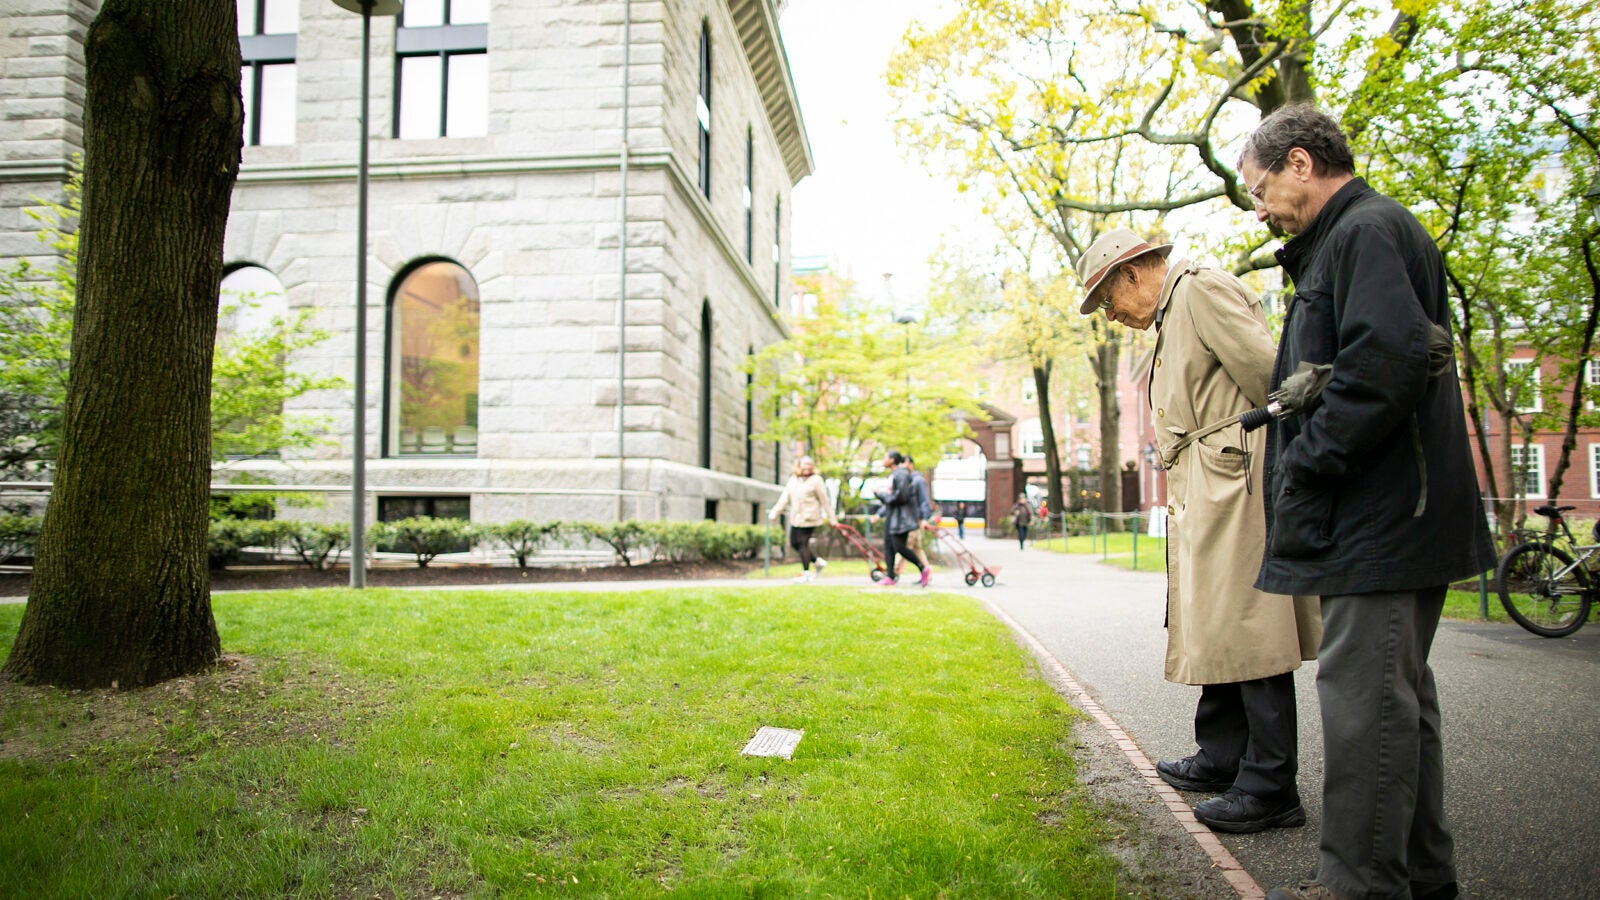 Two men examine plaque in Harvard Yard.